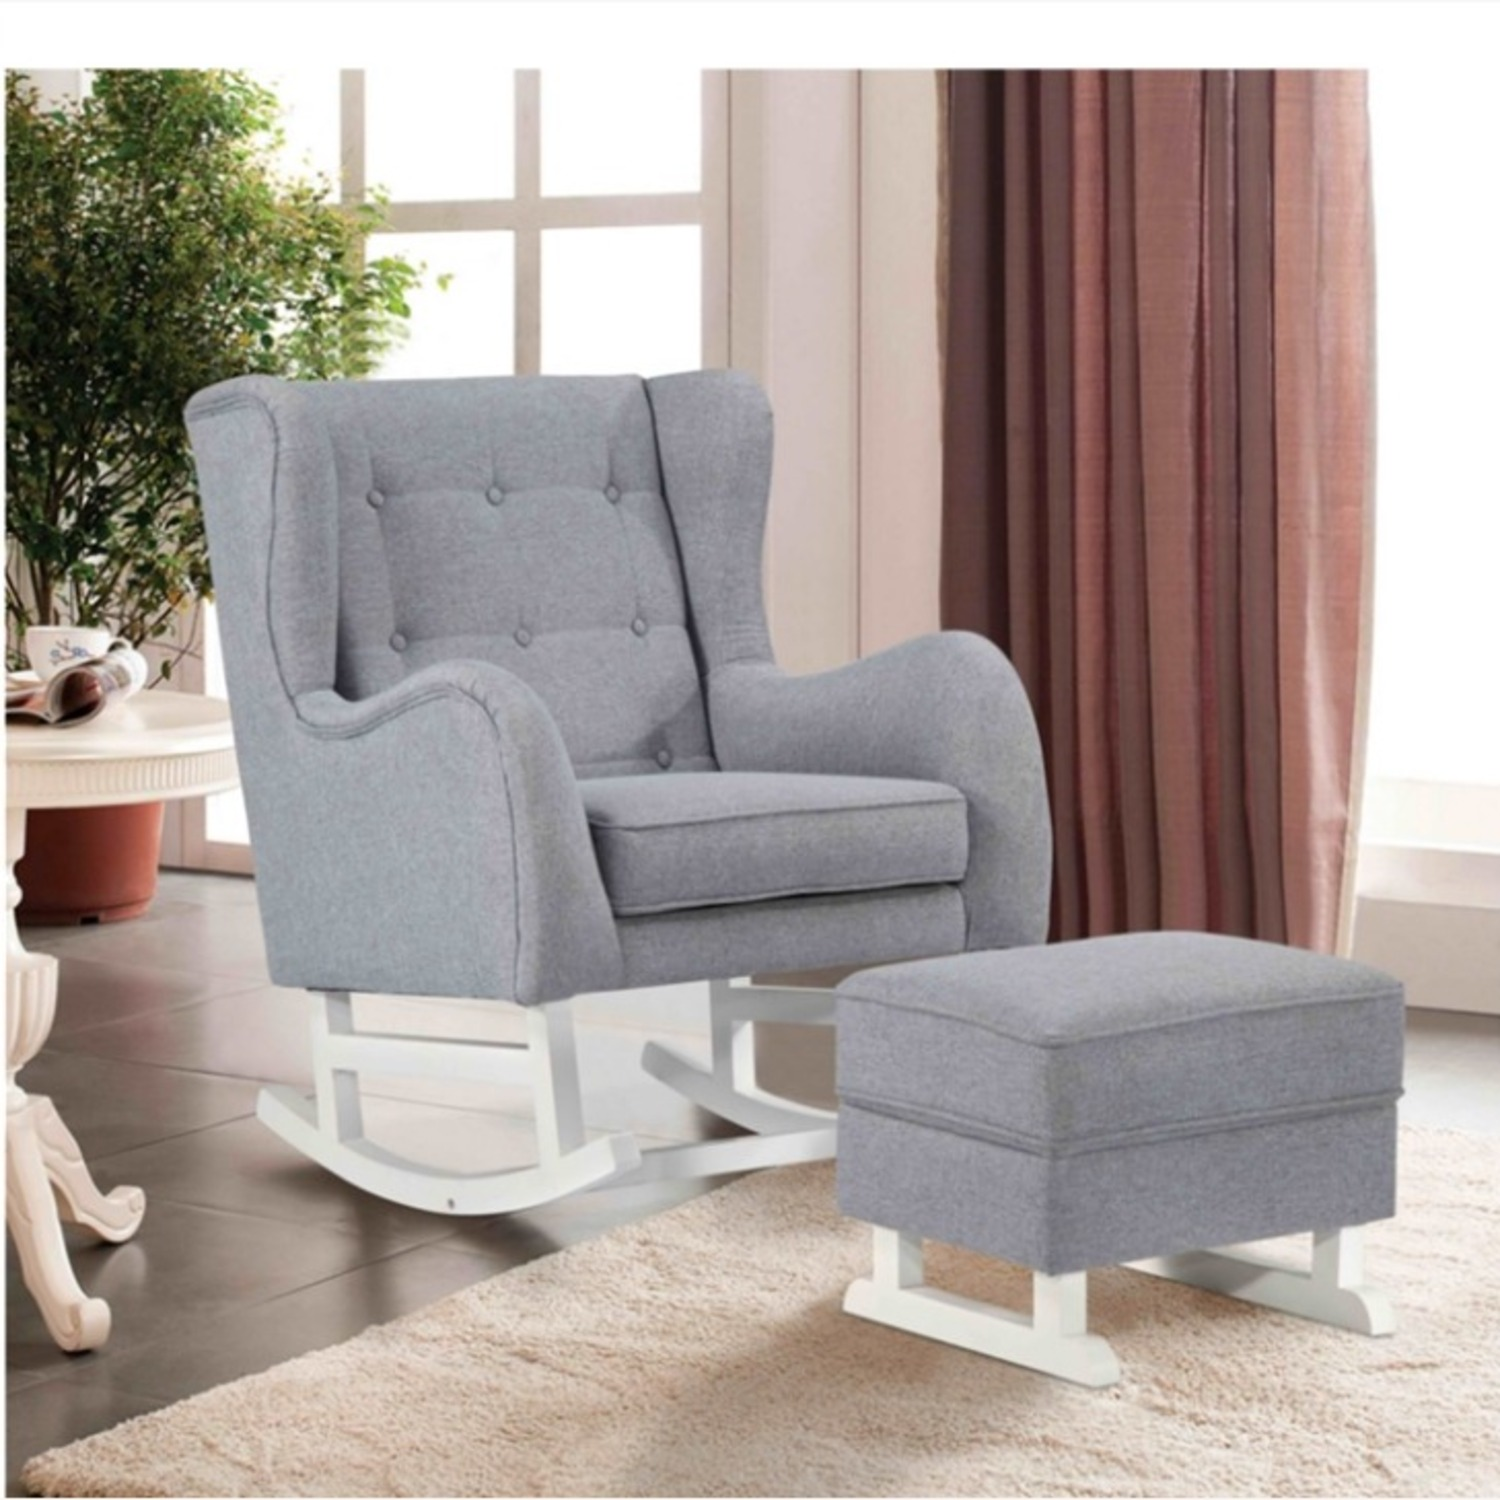 Baby Lounge Chair & Ottoman In Gray Fabric - image-7